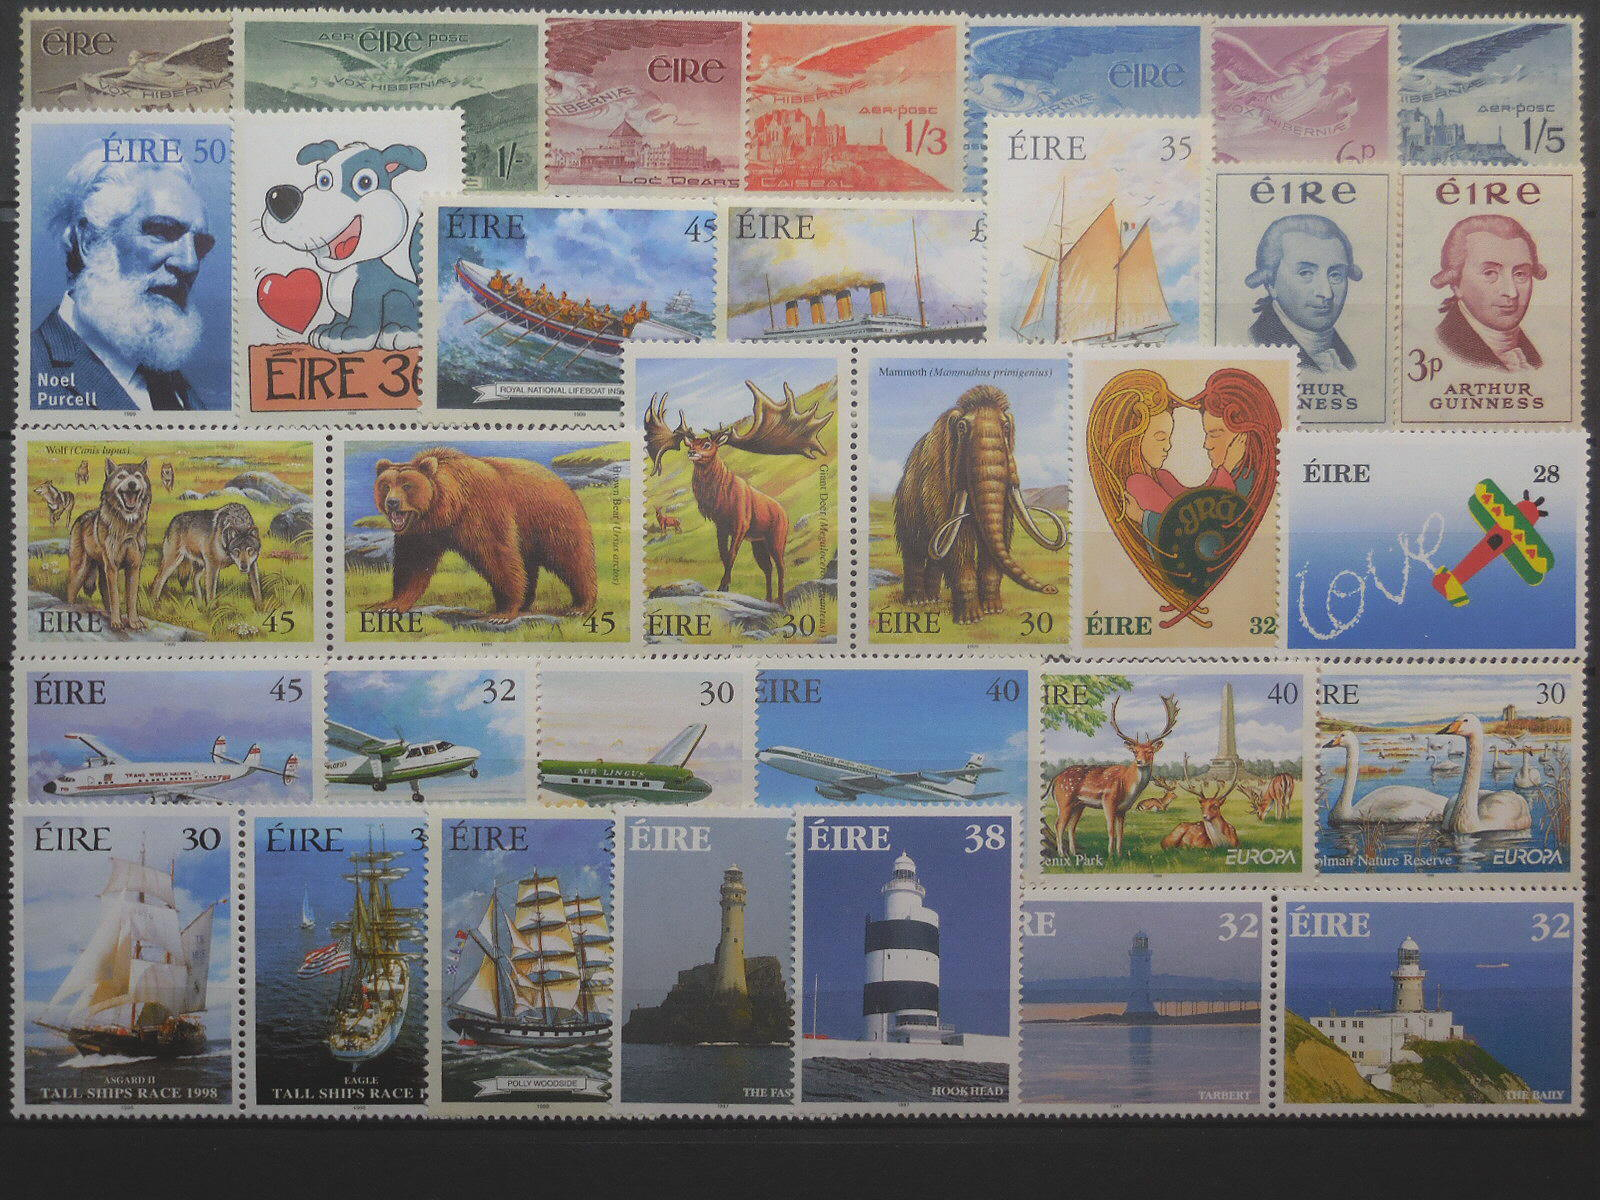 Irish stamps for collectors on approval